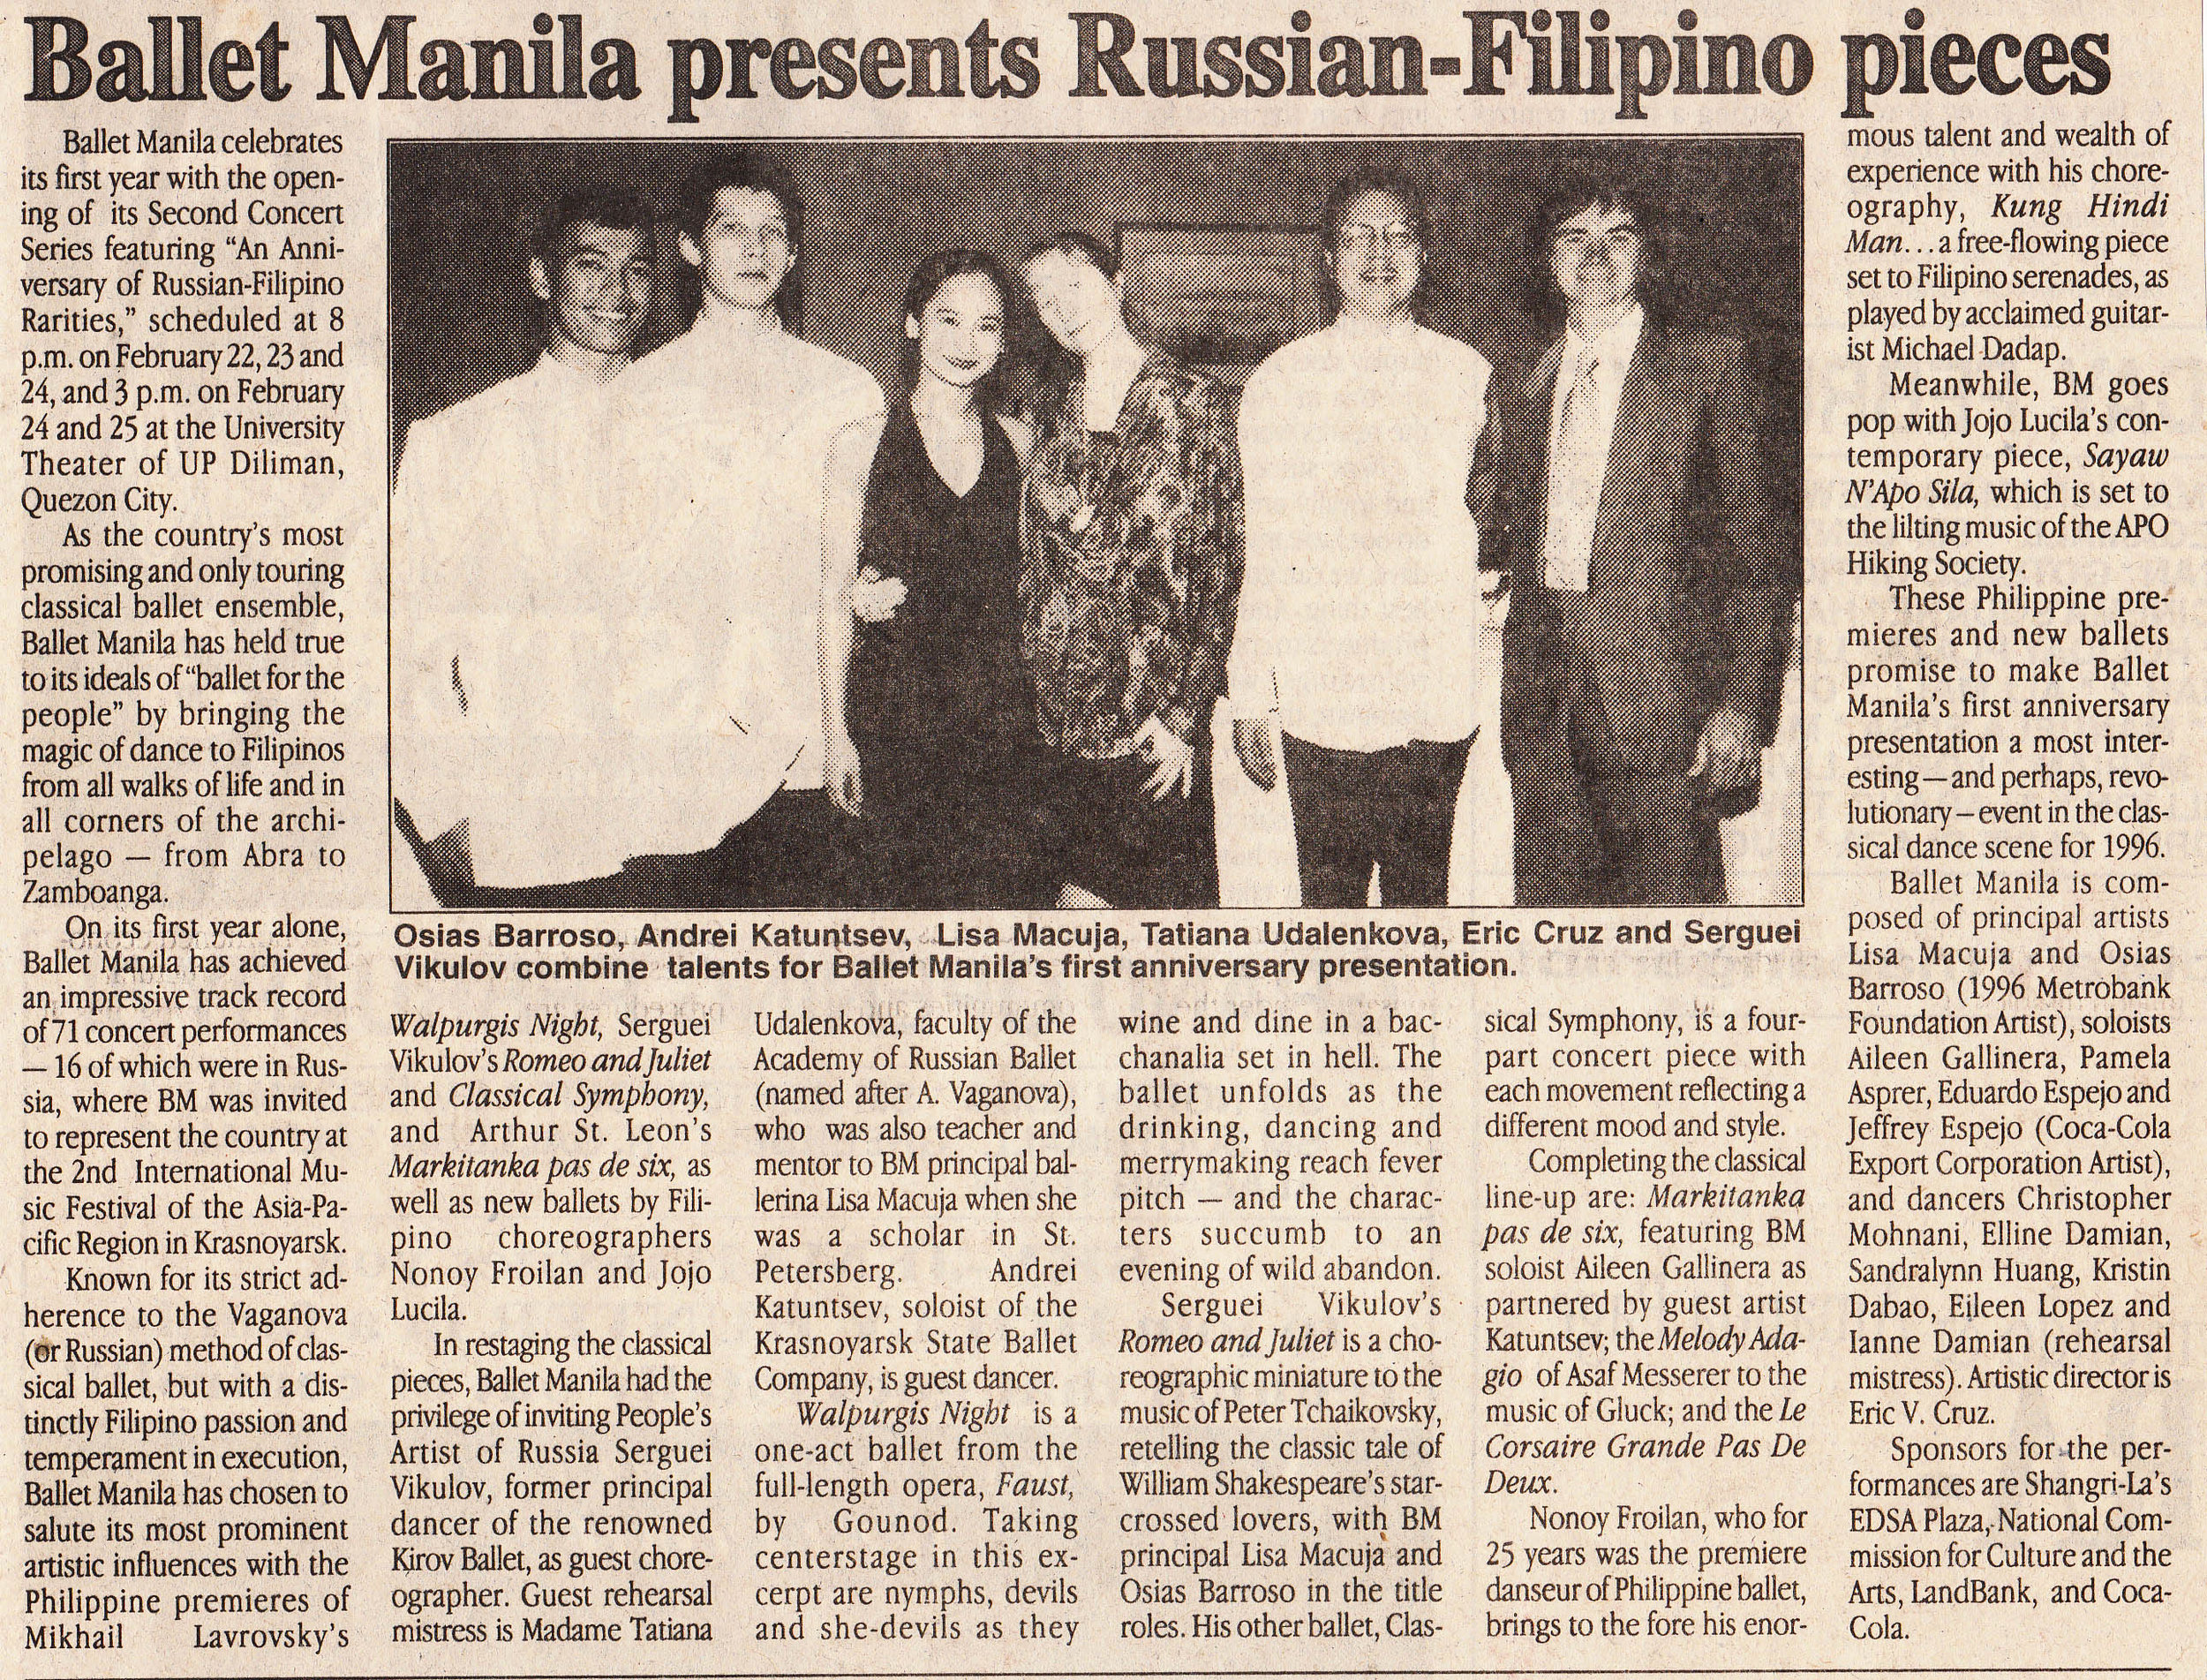 A press release published in The Philippine Star lists the numbers featured in the anniversary repertoire. From the Ballet Manila Archives collection